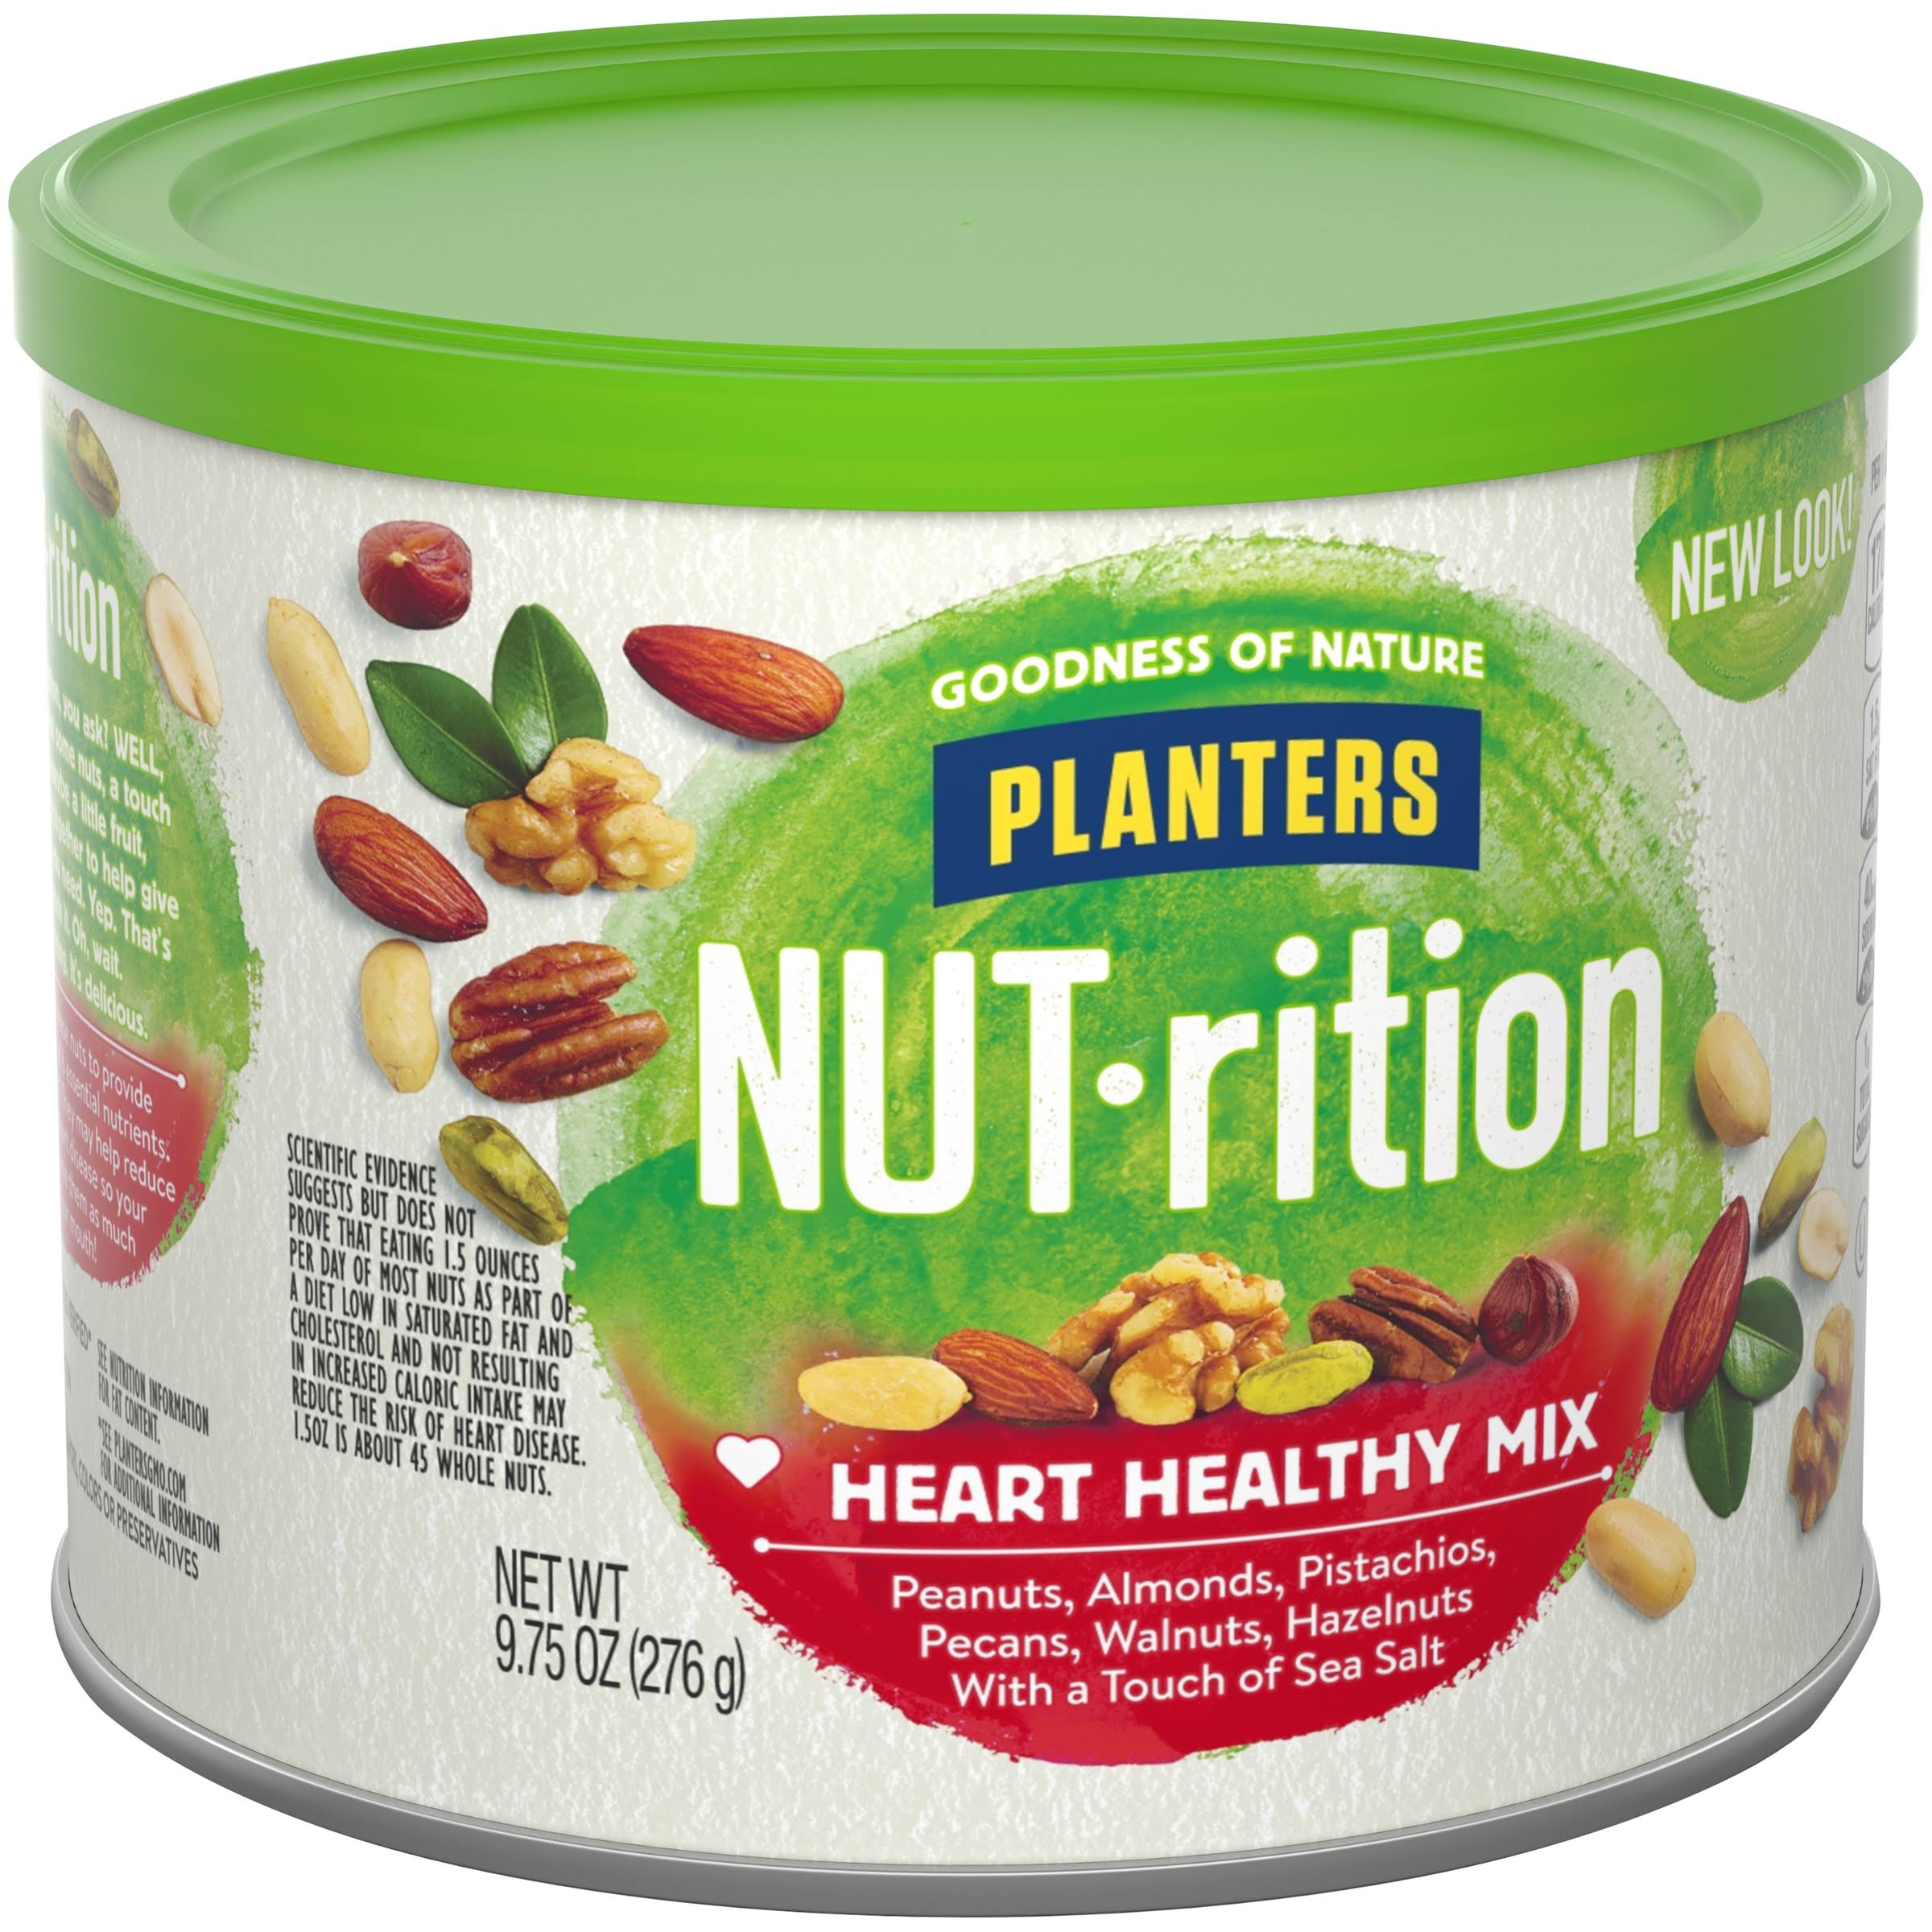 Planters Nutrition Heart Healthy Mix - 9.75oz